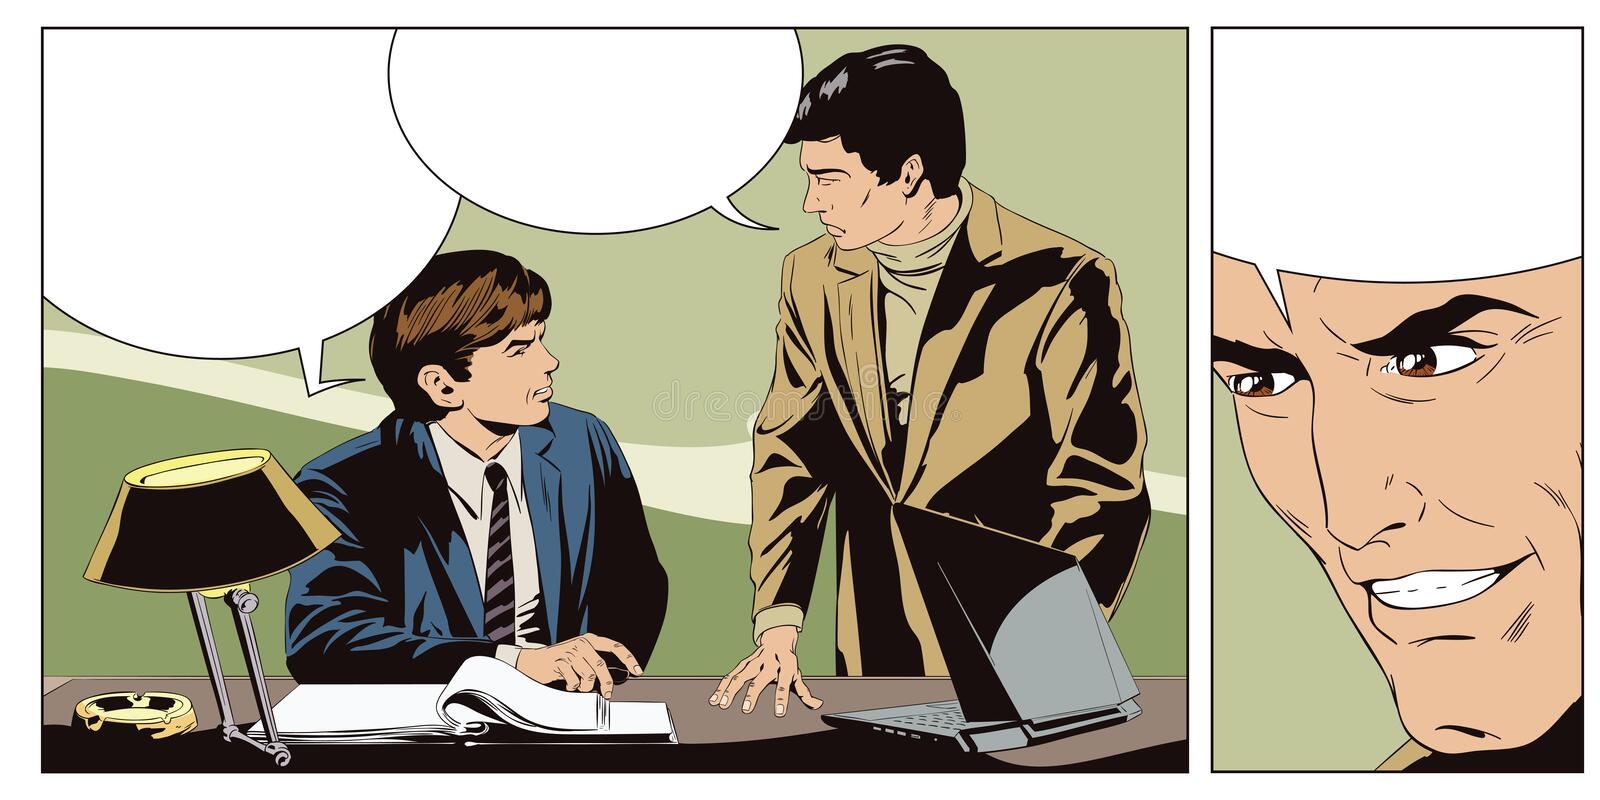 Businessman talking something a colleague. royalty free illustration